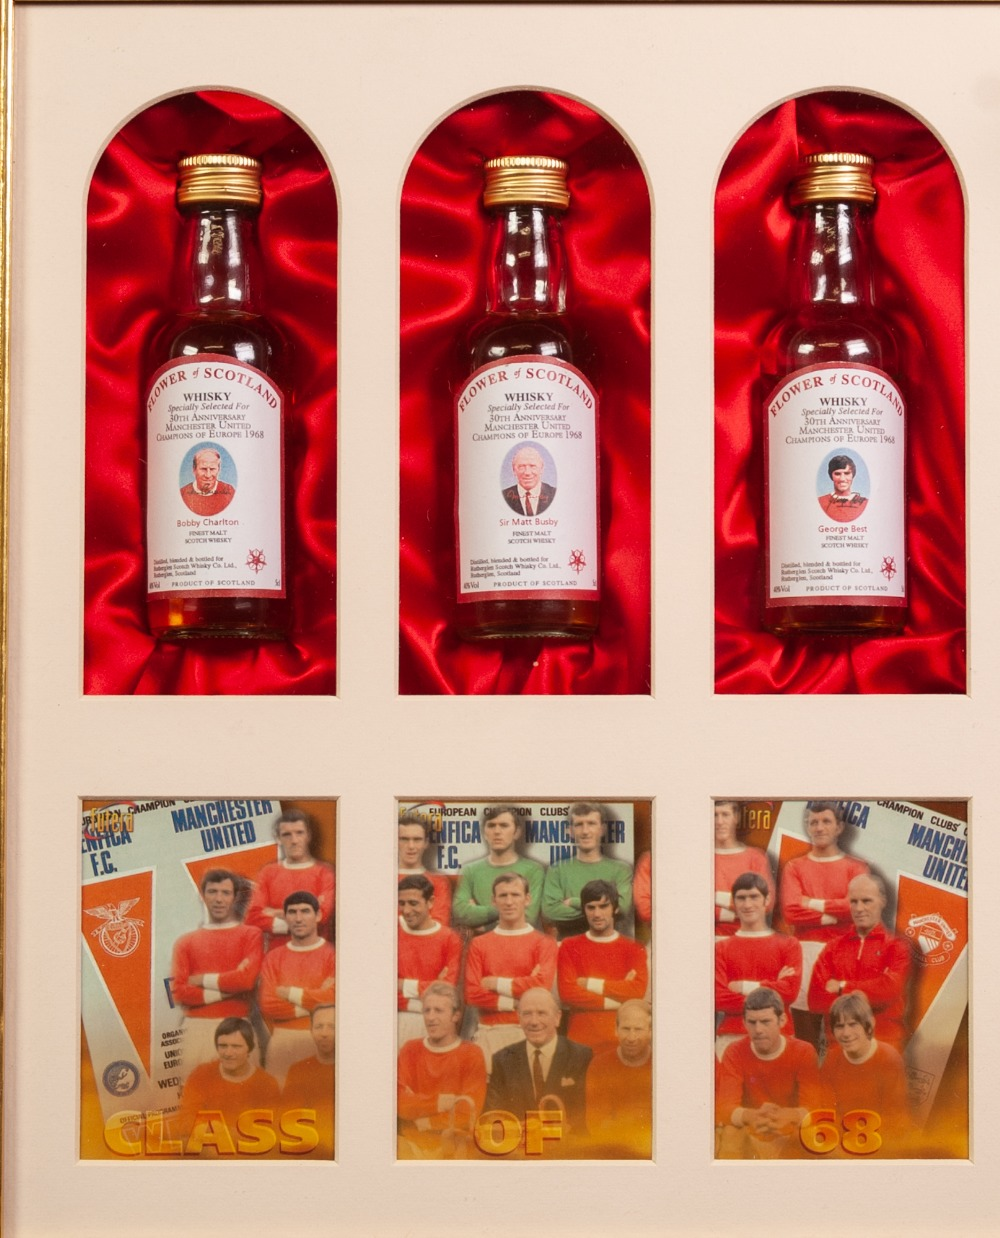 Lot 513 - FLOWER OF SCOTLAND - 3 MINIATURE BOTTLES CLASS OF '68 IN A FRAME, glazed and A PICTURE OF LNER No.